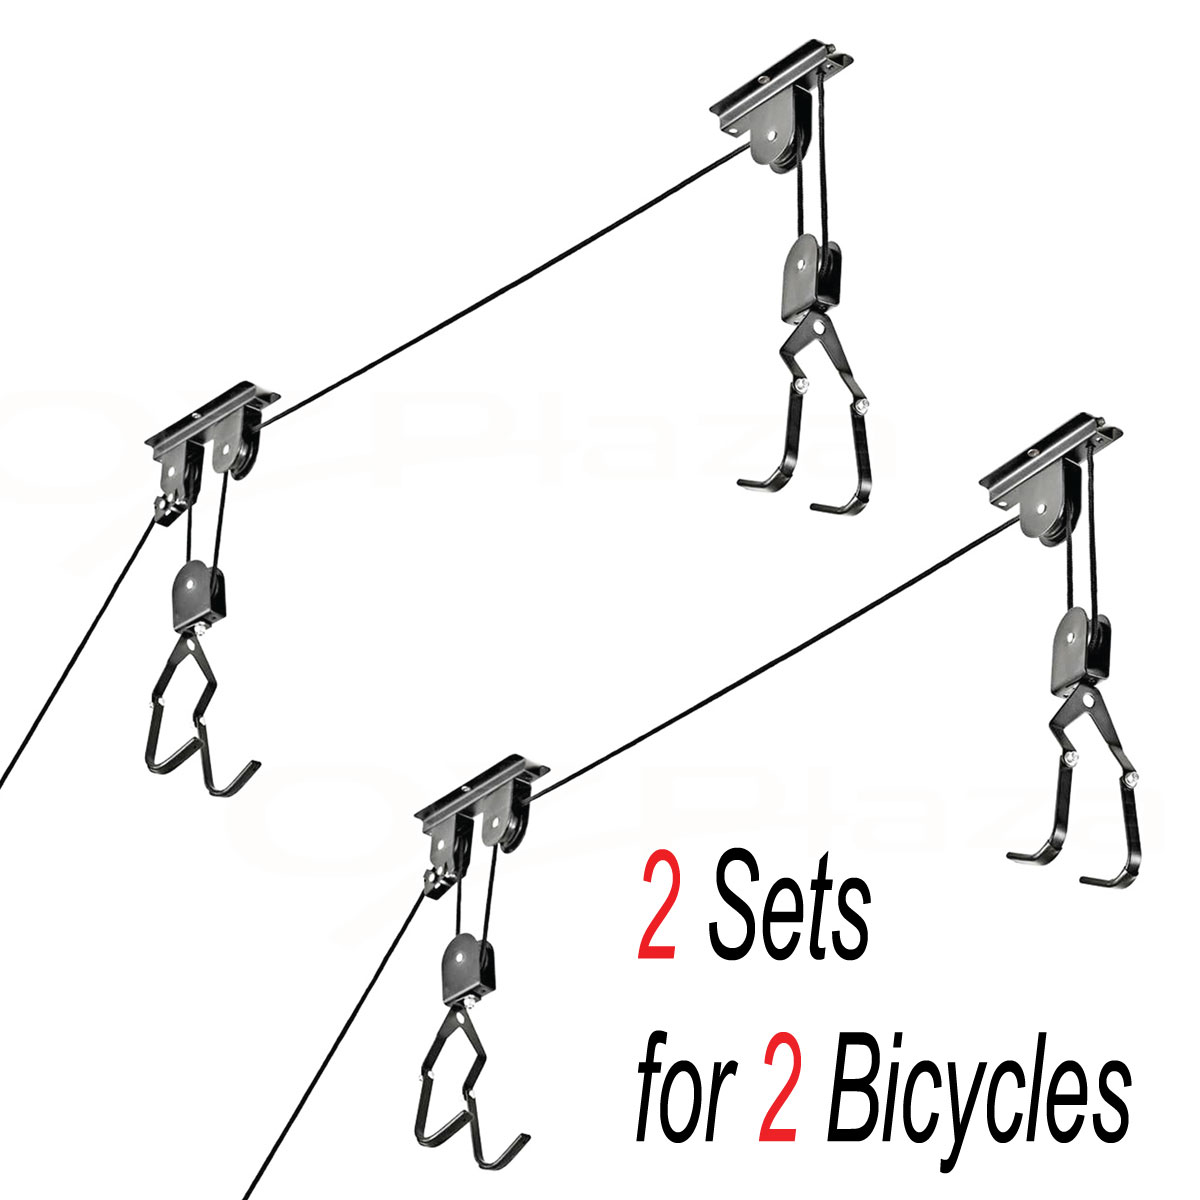 Ceiling Mounted Roof Bicycle Lift Garage Pulley Racks Stand Storage Set Of 2